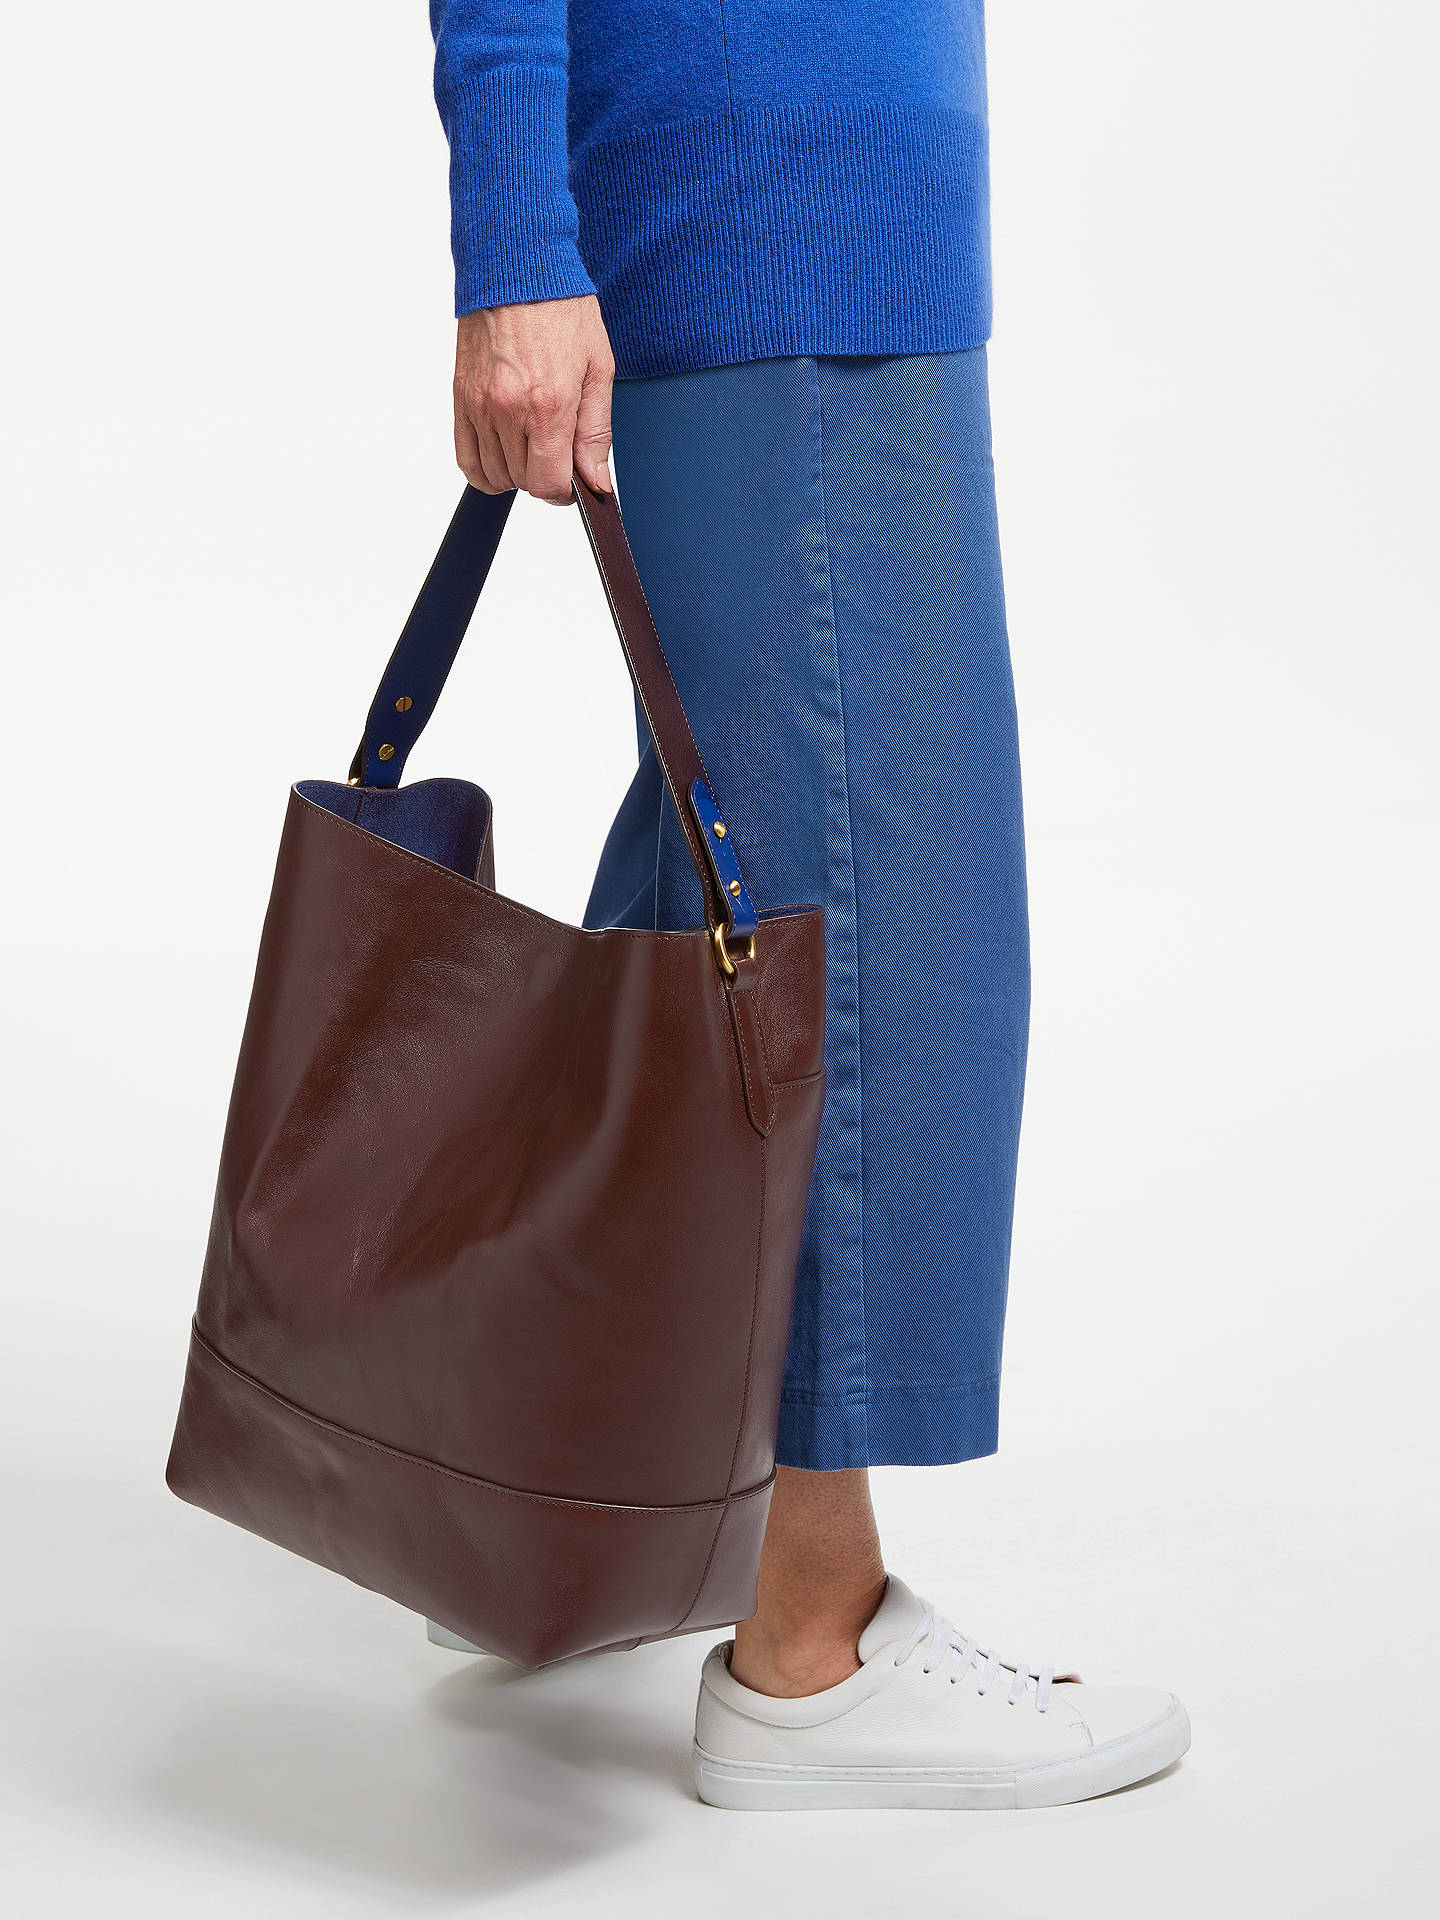 fafc8781b2 ... Buy John Lewis & Partners Sawyer Leather Large Contrast Colour Tote Bag,  Chestnut Online at ...